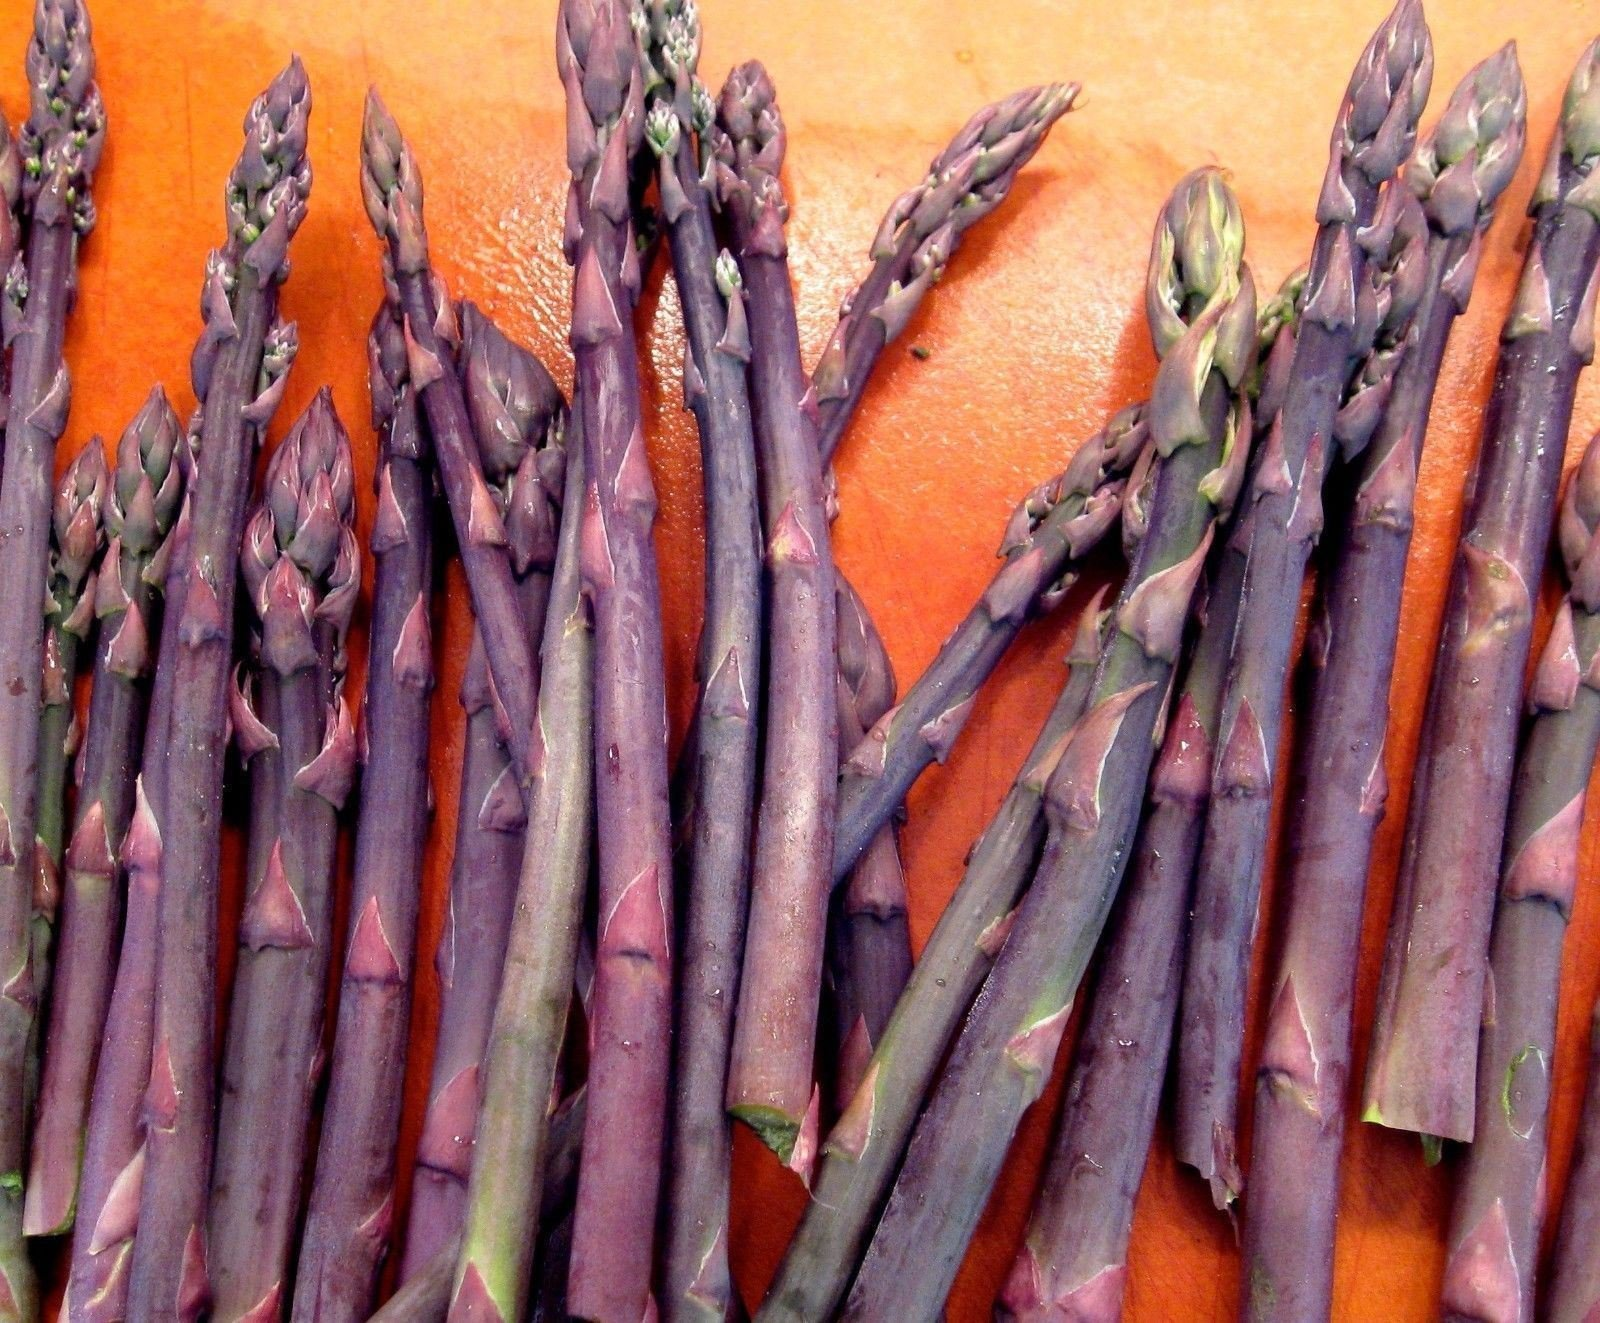 20 Asparagus Crown - Asparagus - Purple Passion 2 Year Roots by eightplant